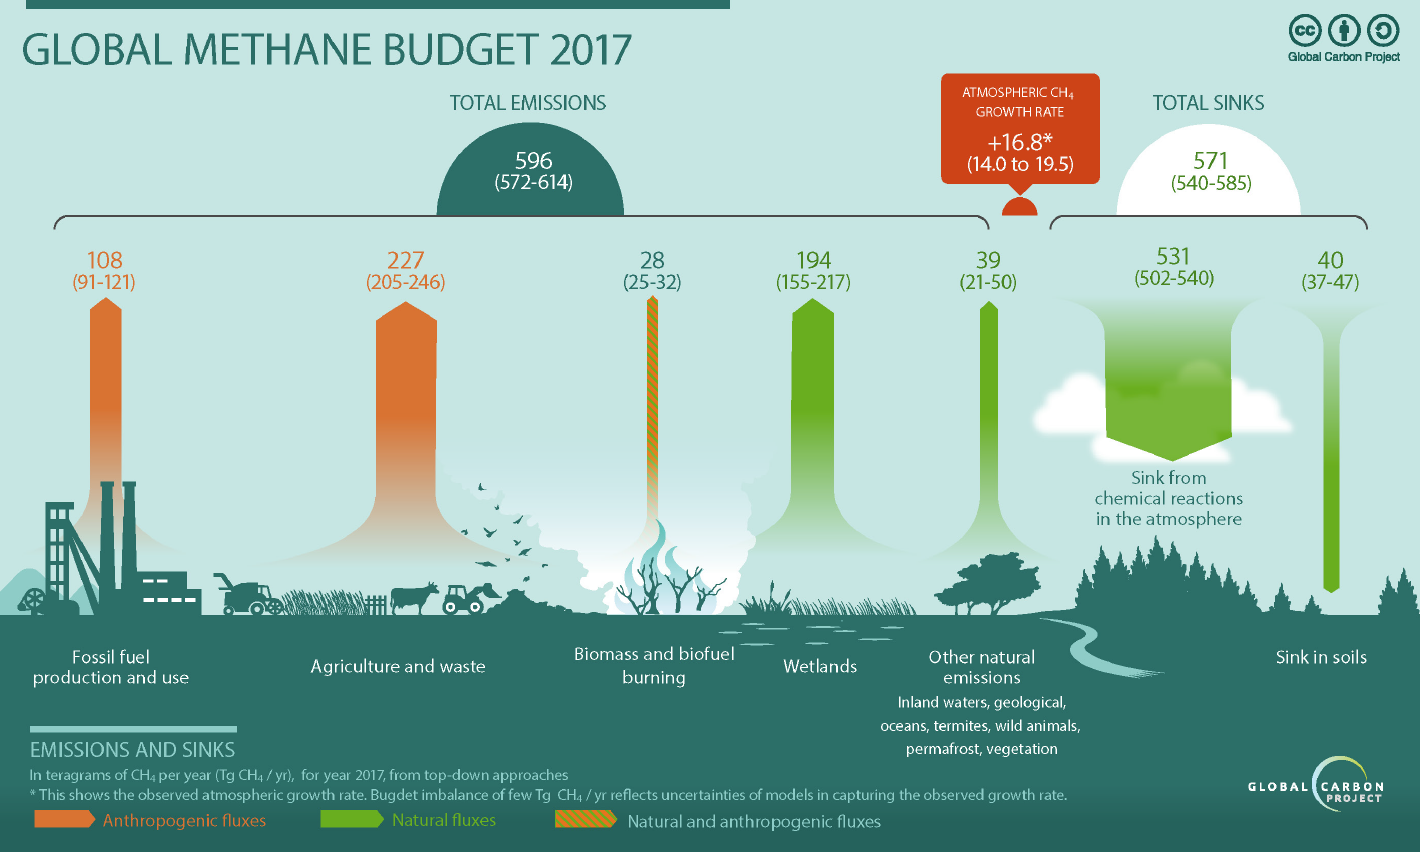 Figure 4. Global CH4 Budget for 2017 including all major natural and anthropogenic sources and sinks. From Jackson et al. (2020) and Saunois et al. (2020).